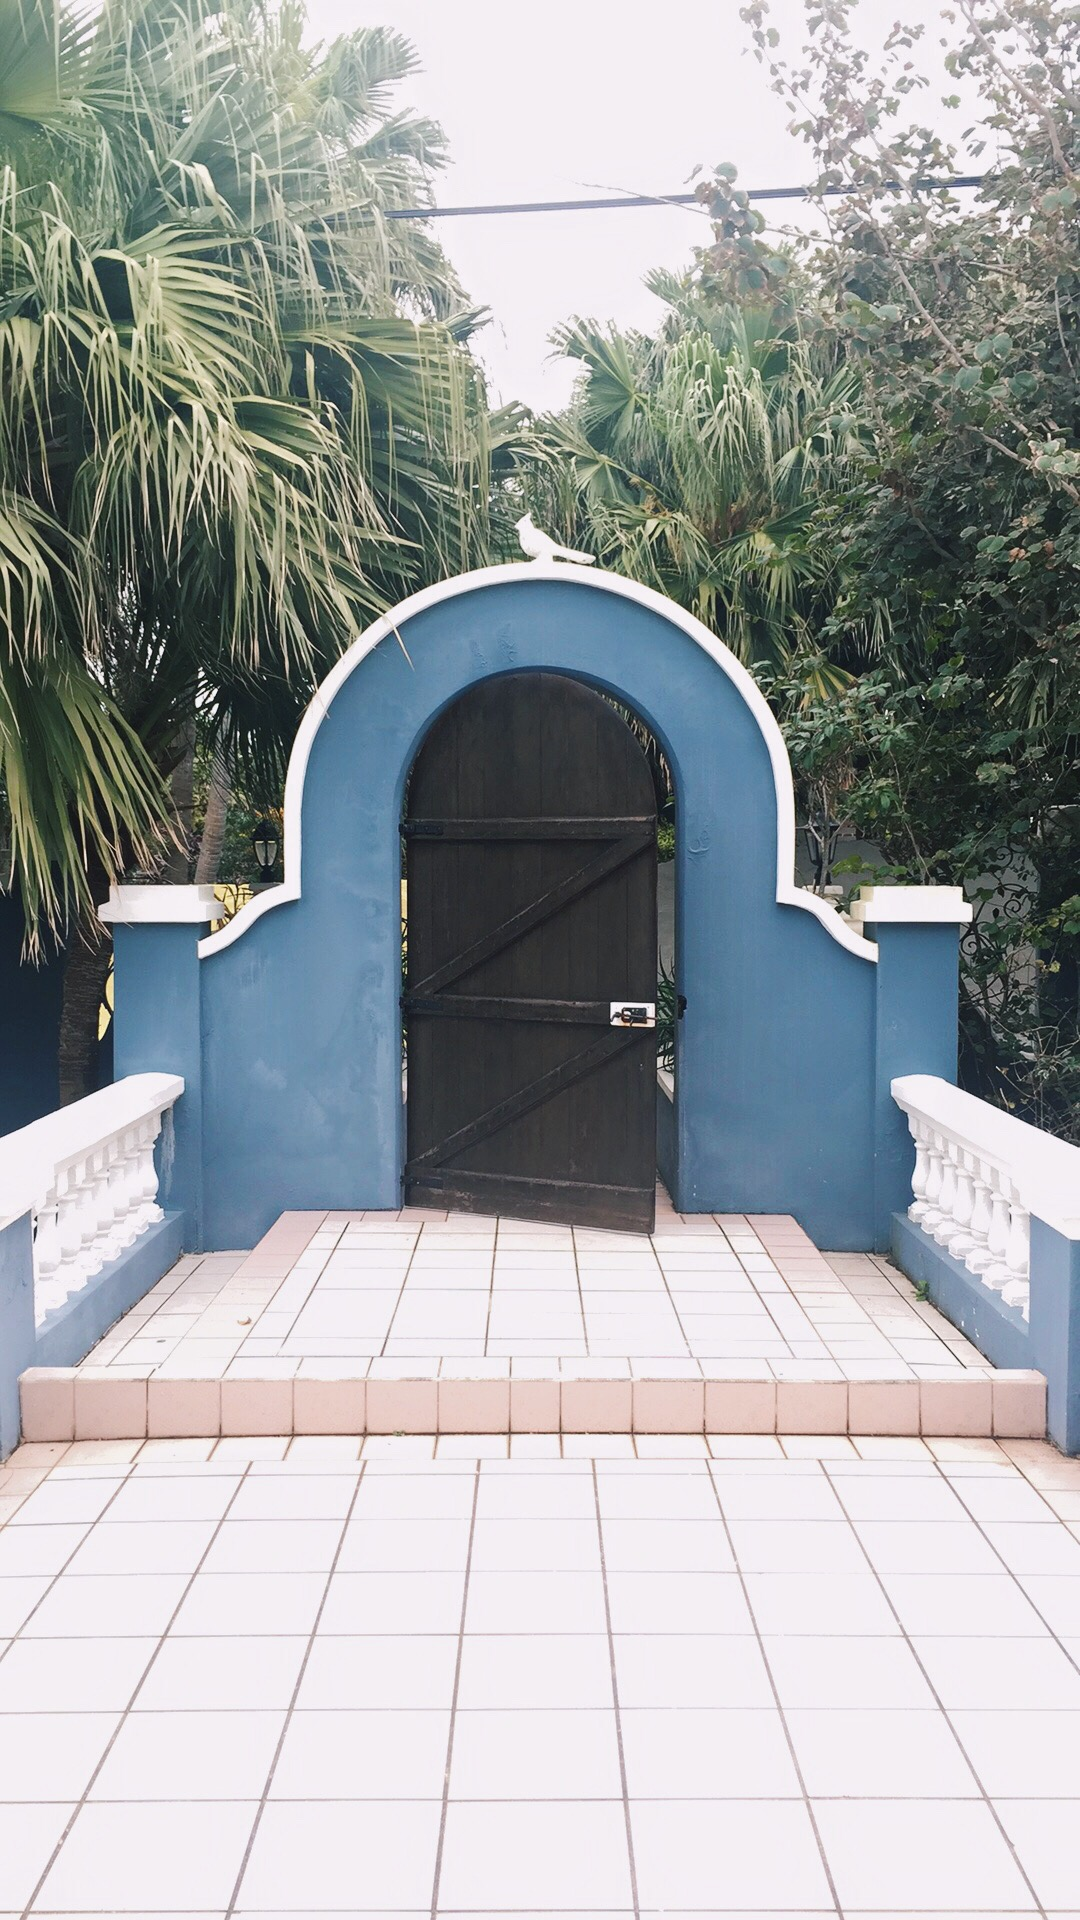 The pastel blue entryway to our Airbnb!